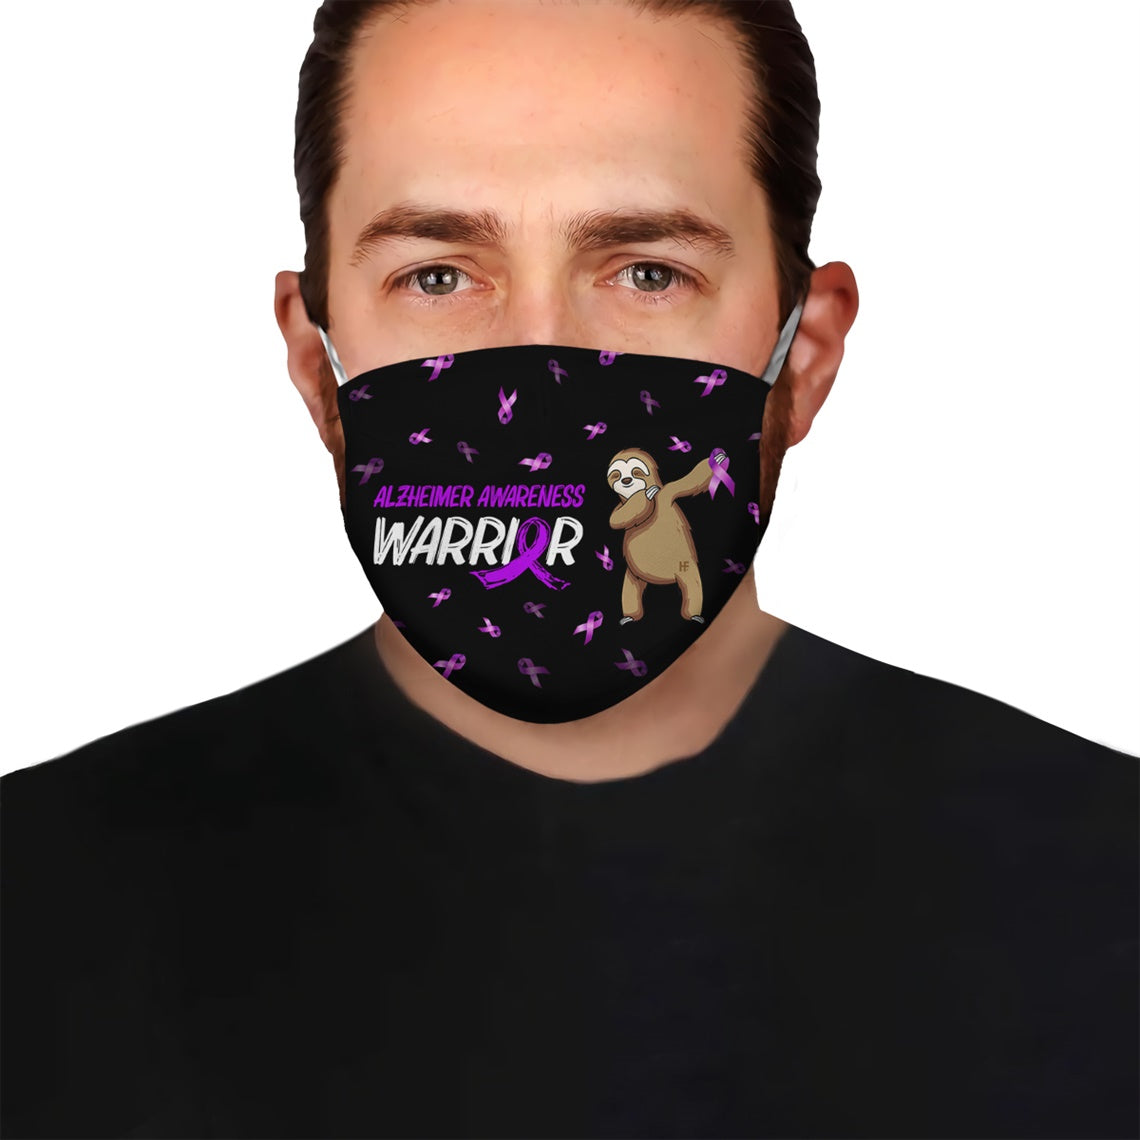 Alzheimer Awareness Warrior EZ15 2905 Face Mask - Hyperfavor